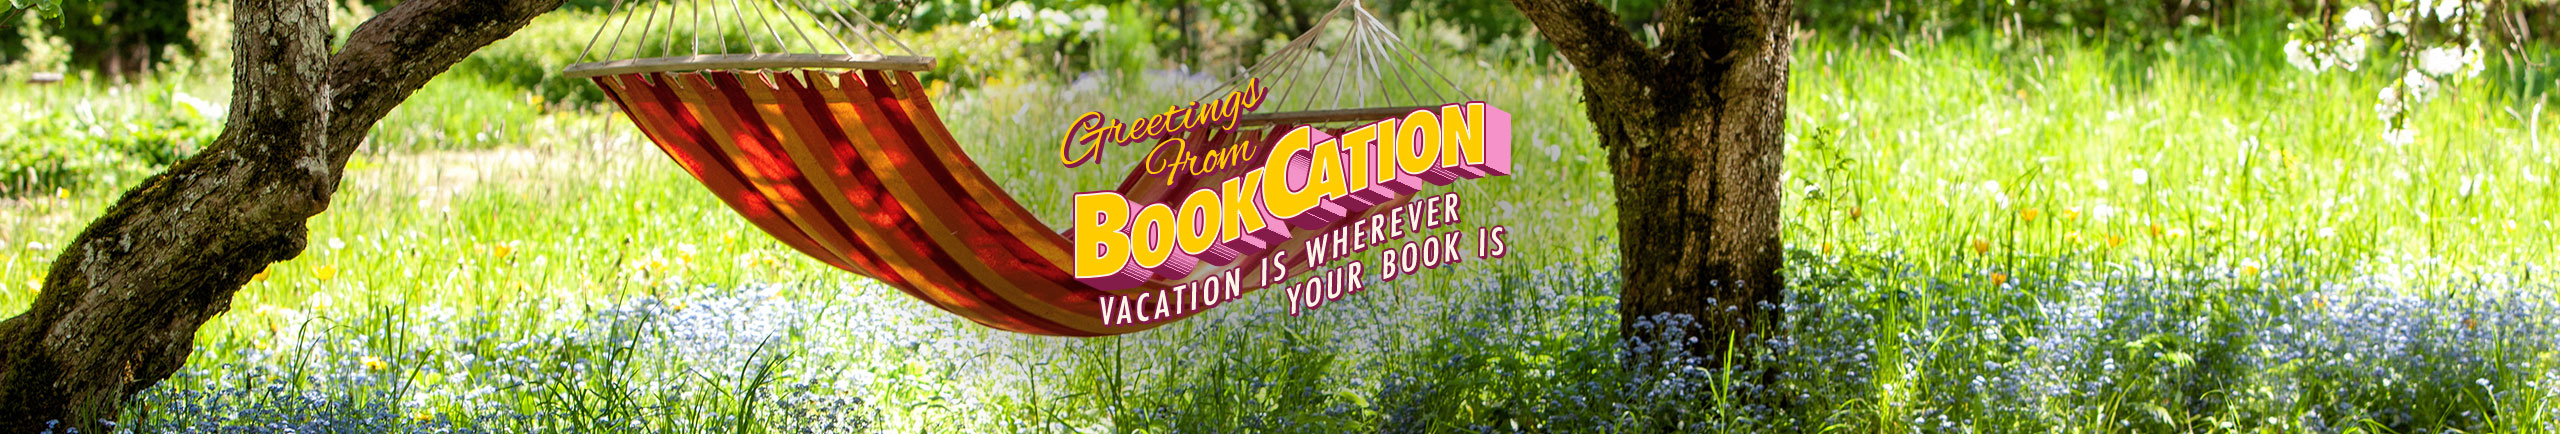 Bookcation Vacation is Wherever Your Book Is